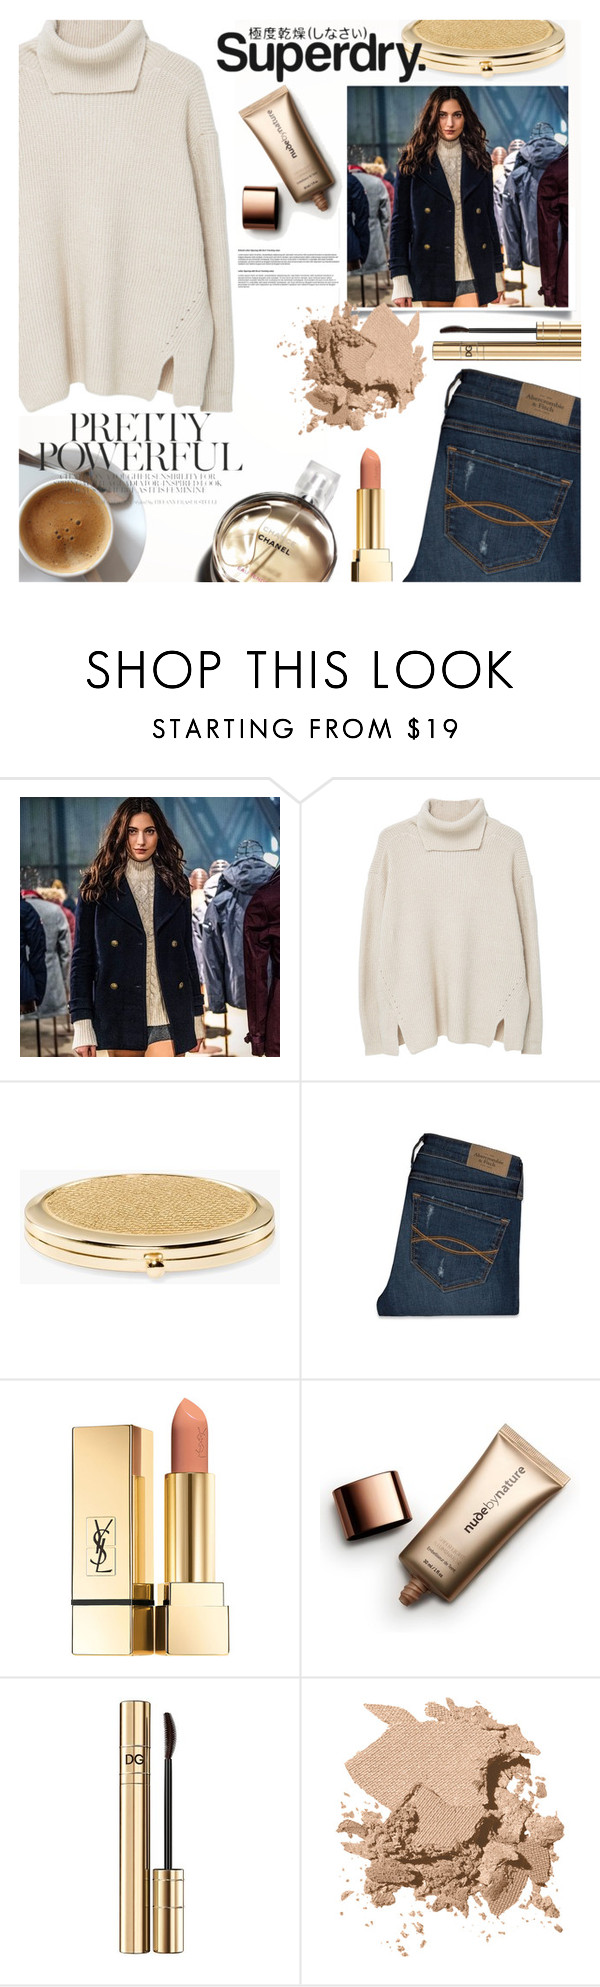 """The Cover Up – Jackets by Superdry: Contest Entry"" by jullan600 ❤ liked on Polyvore featuring Superdry, MANGO, Chico's, Abercrombie & Fitch, Chanel, Nude by Nature, Dolce&Gabbana and Bobbi Brown Cosmetics"